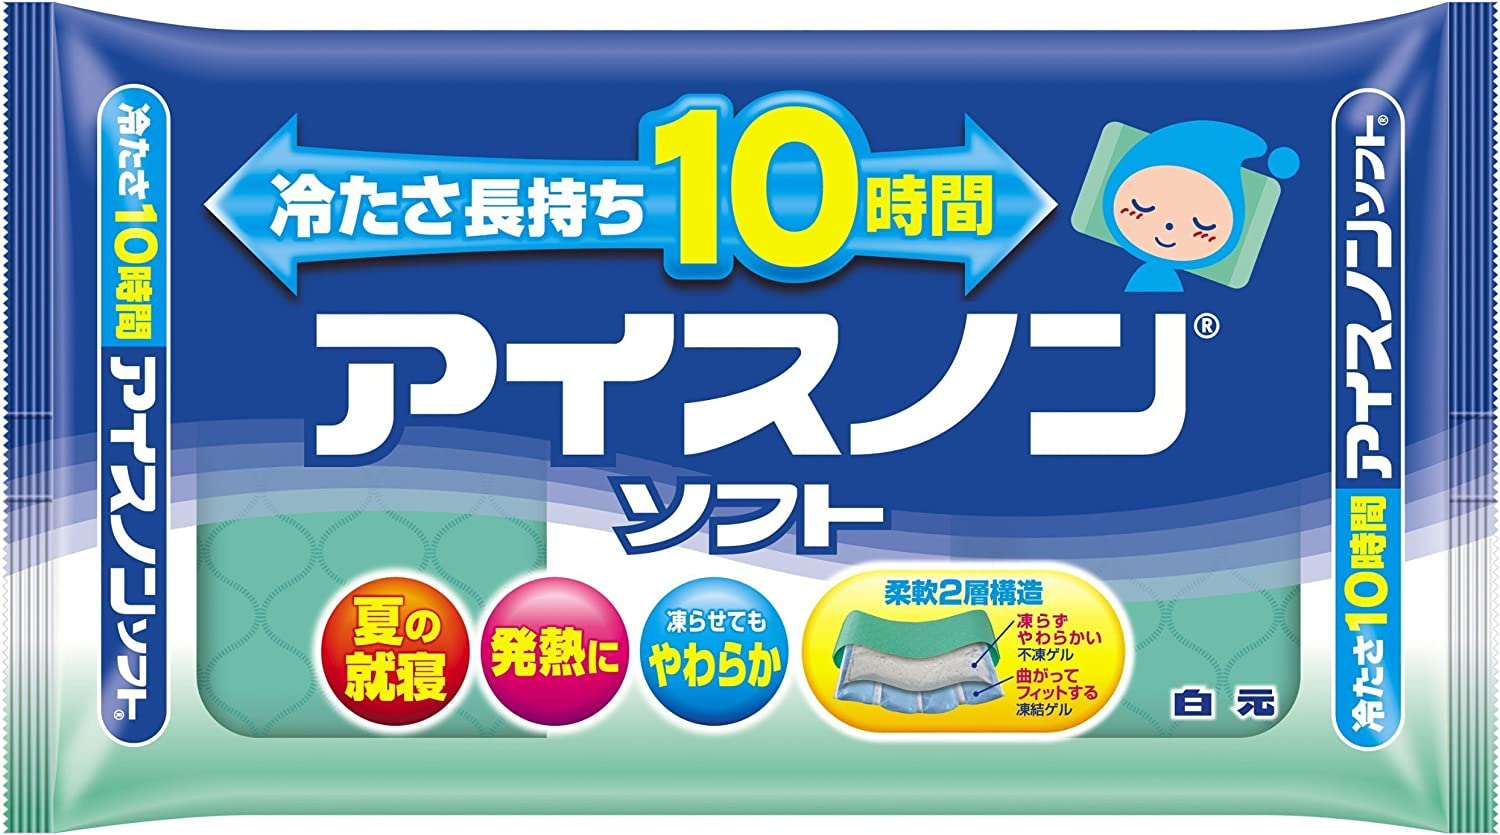 Ice Non Cooling Pad Pillow Soft Type - 1 pc by Hakugen